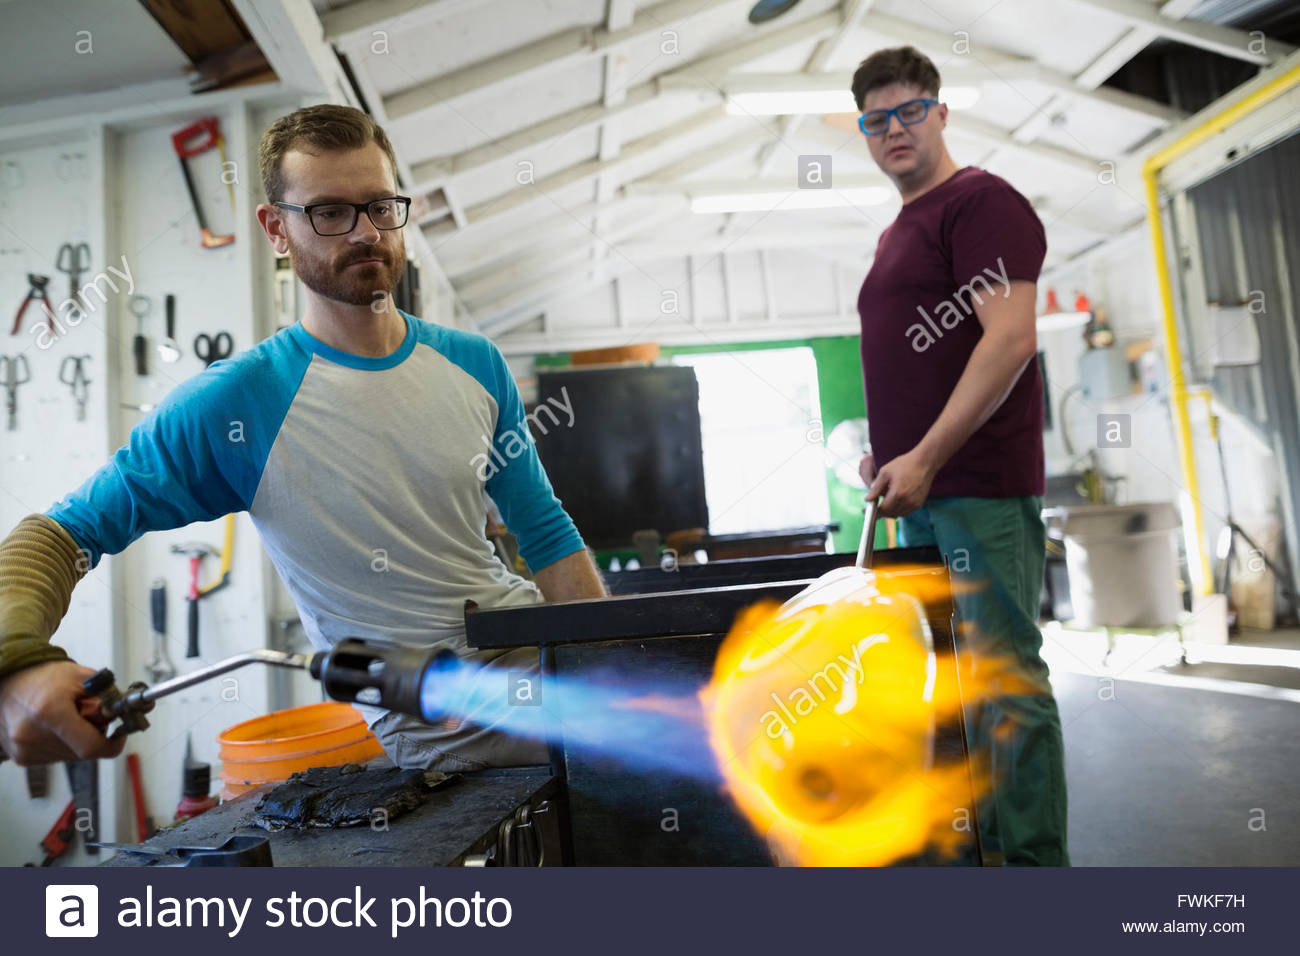 Glassblowers heating molten glass with torch in workshop - Stock Image